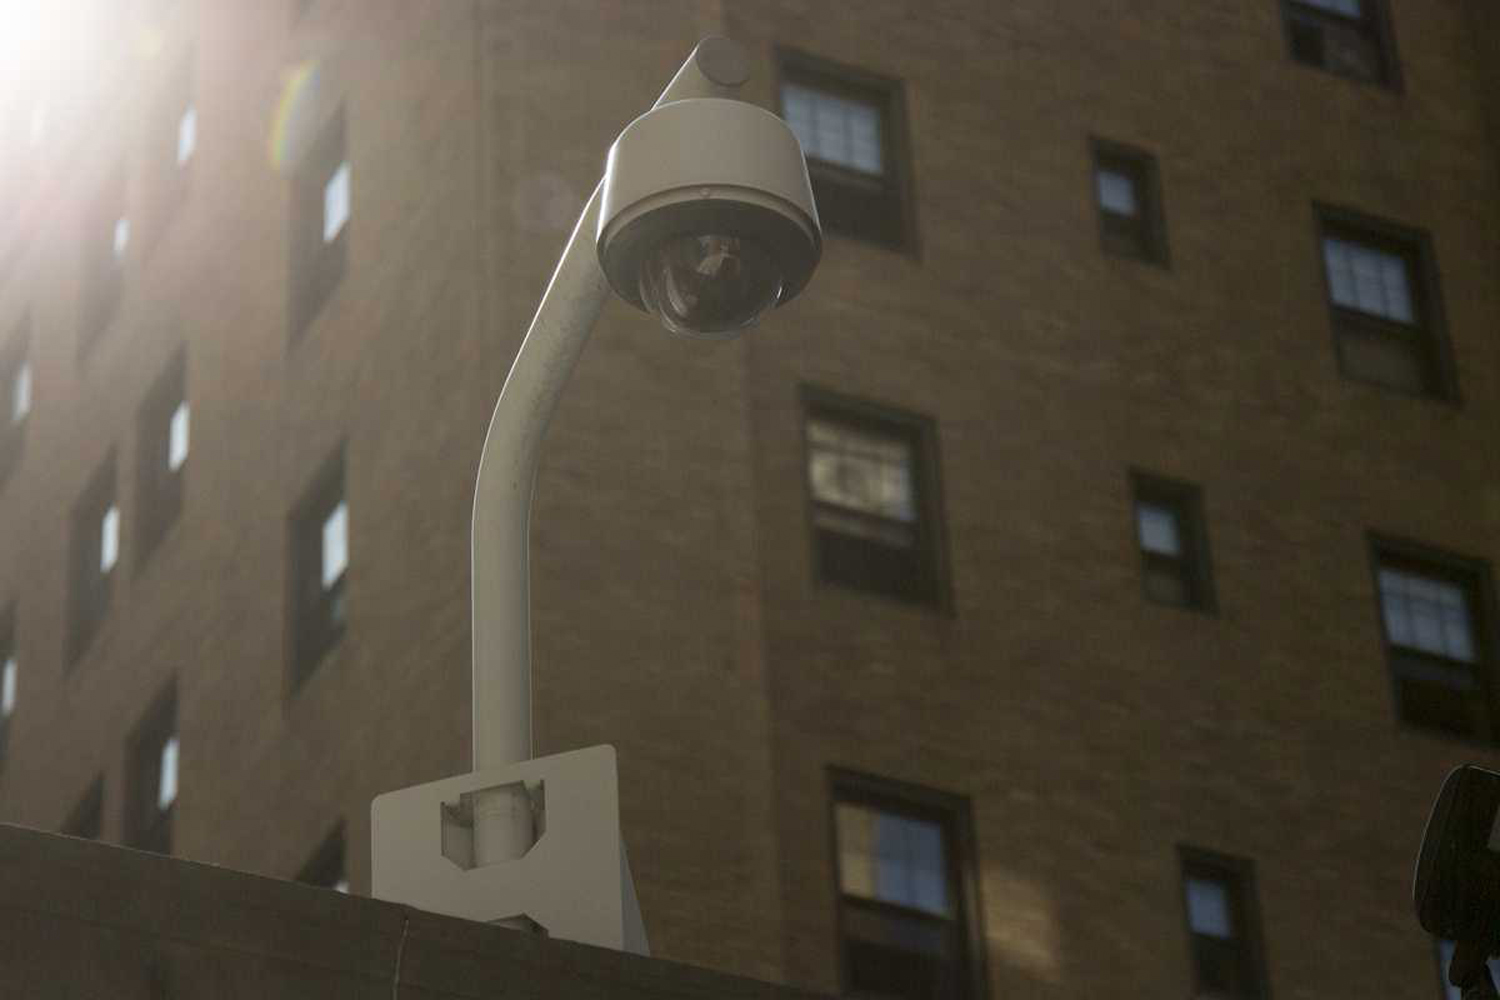 Pitt contributed $15,000 to the installation of 60 surveillance cameras throughout Oakland.